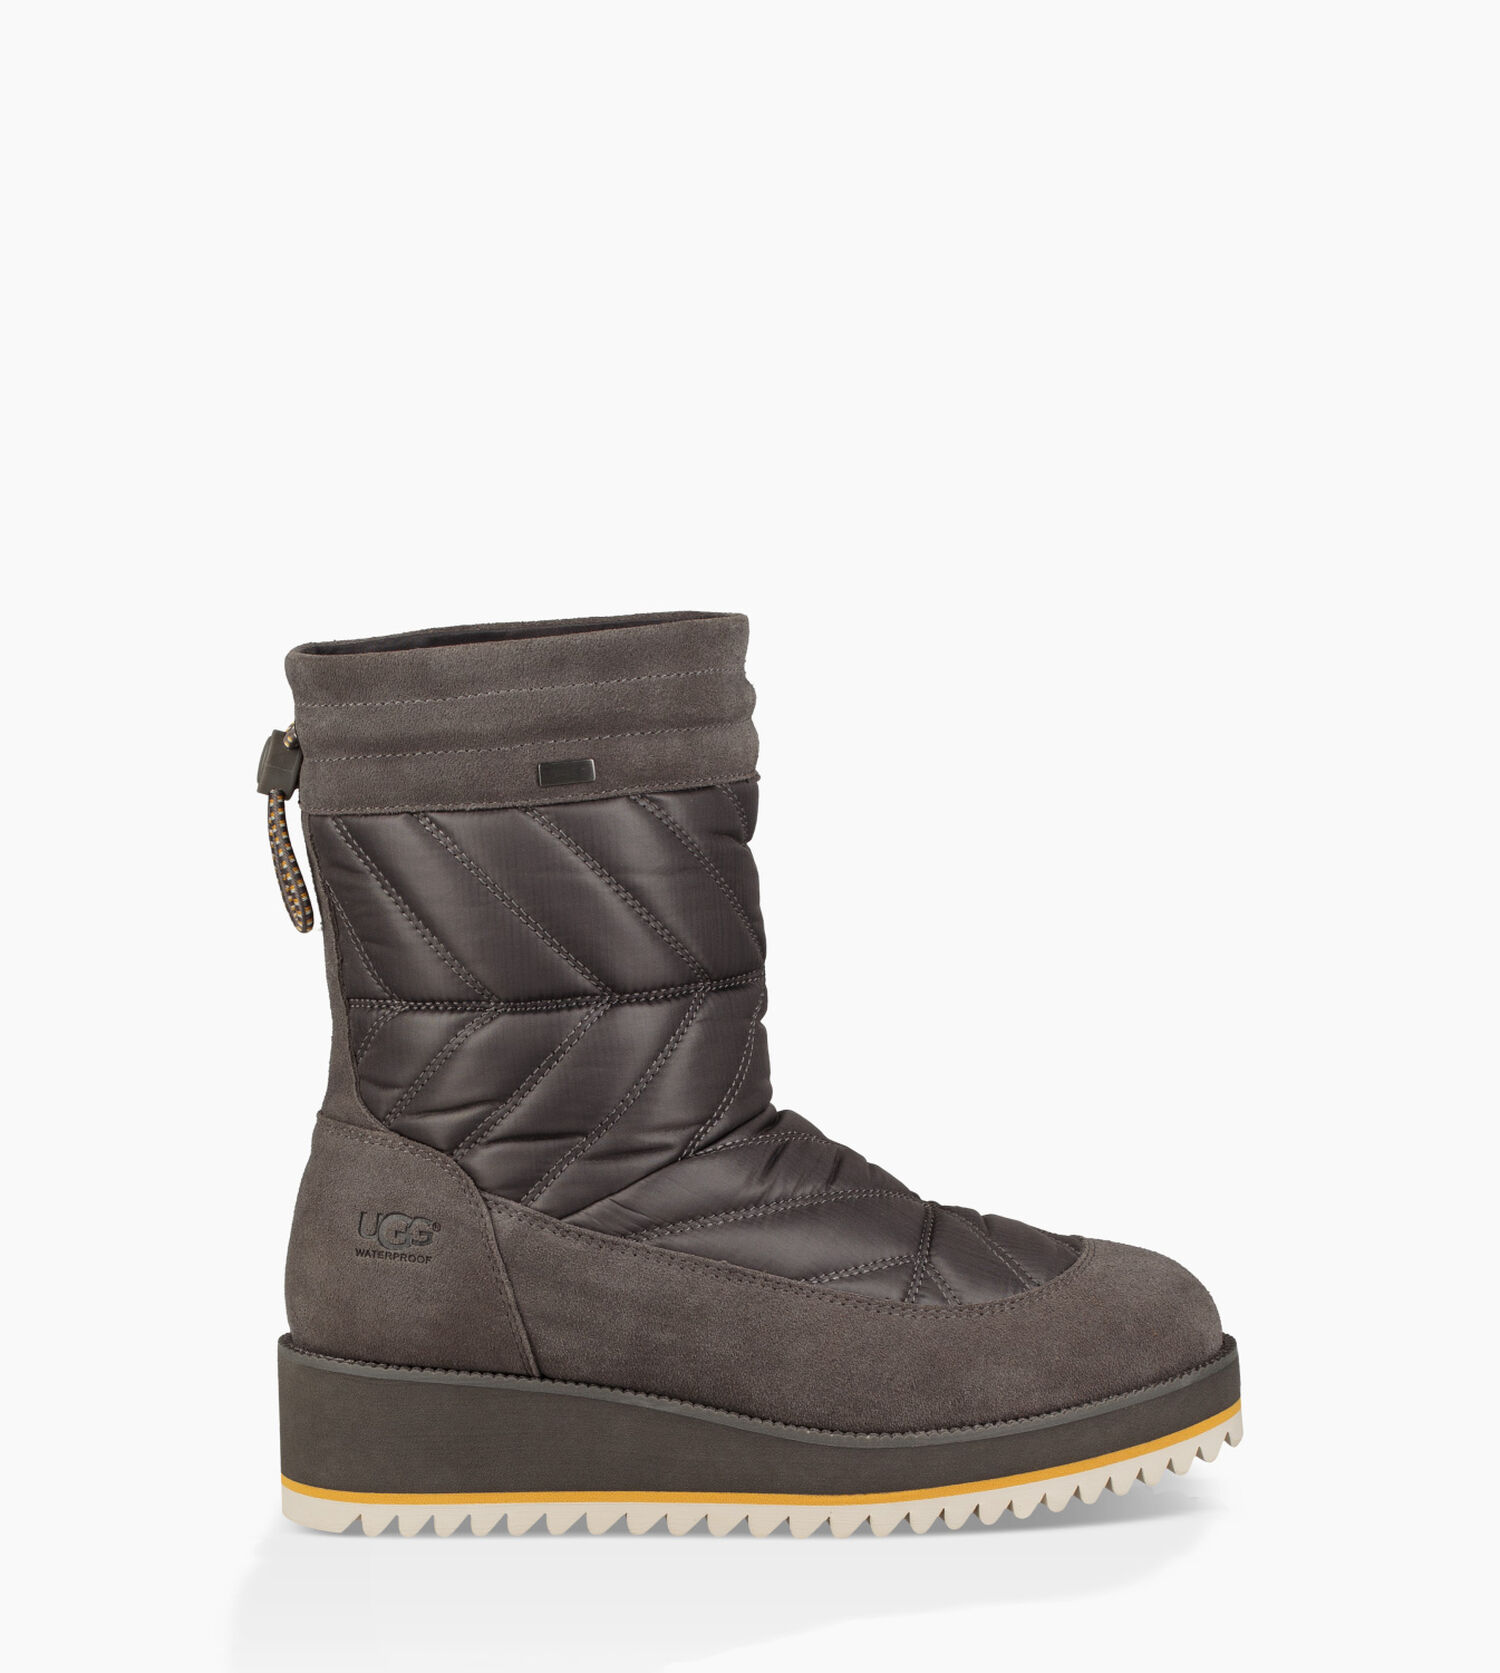 01ae77bd6e7 Women's Share this product Beck Boot